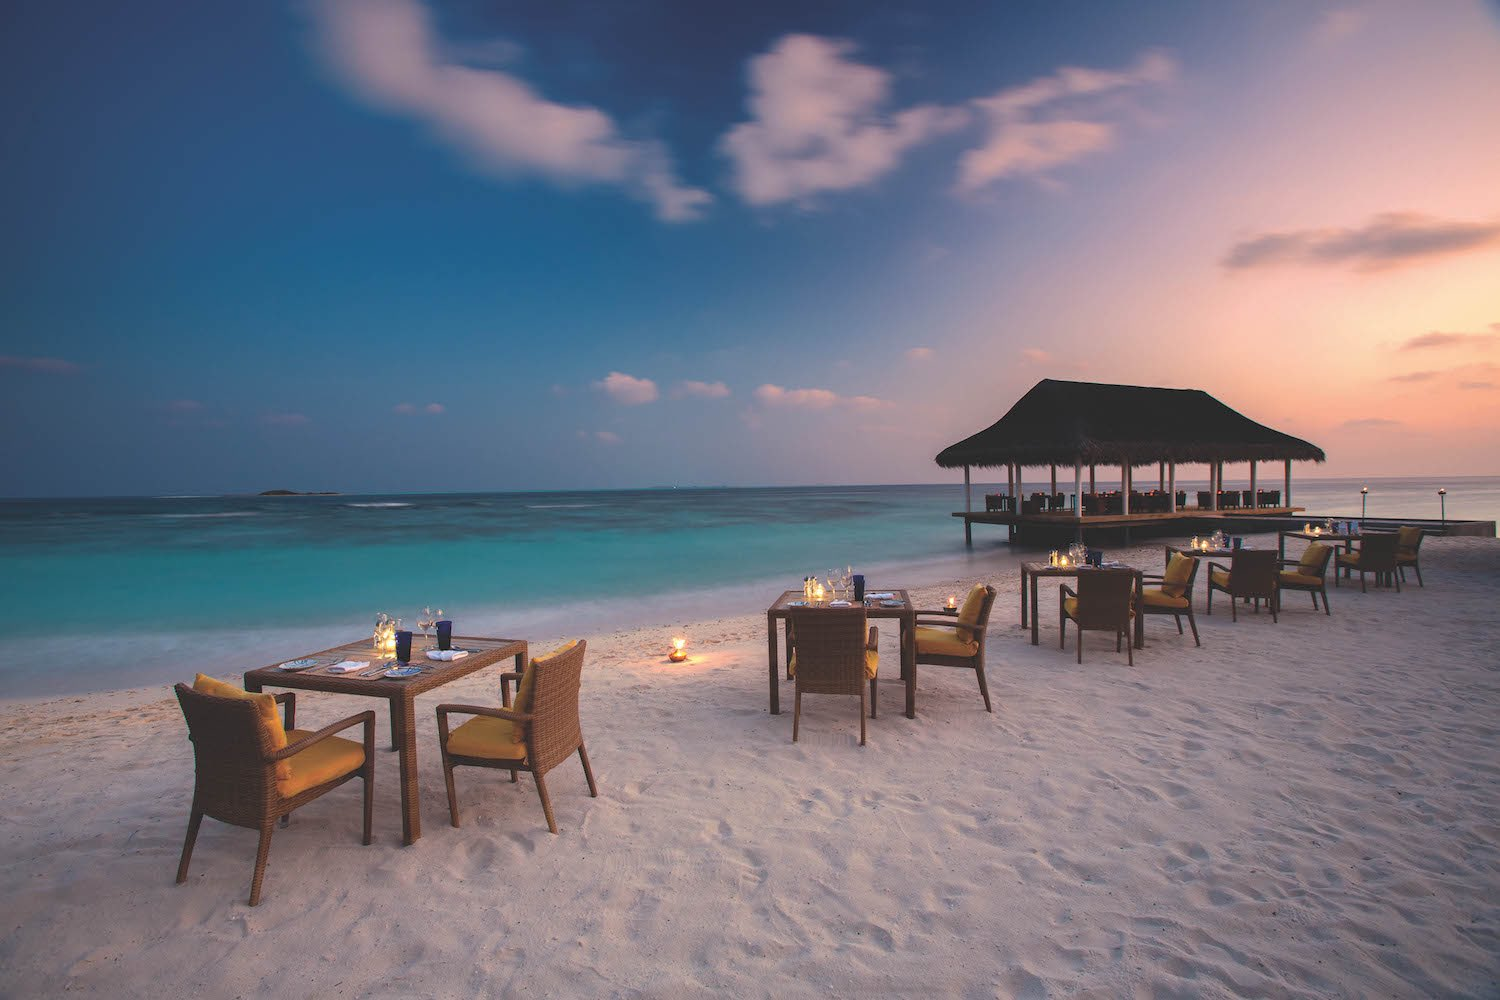 maldives-oblu-by-atmosphere-at-helengeli-just-grill-seating-area-holiday-honeymoon-vacation-invite-to-paradise.jpg